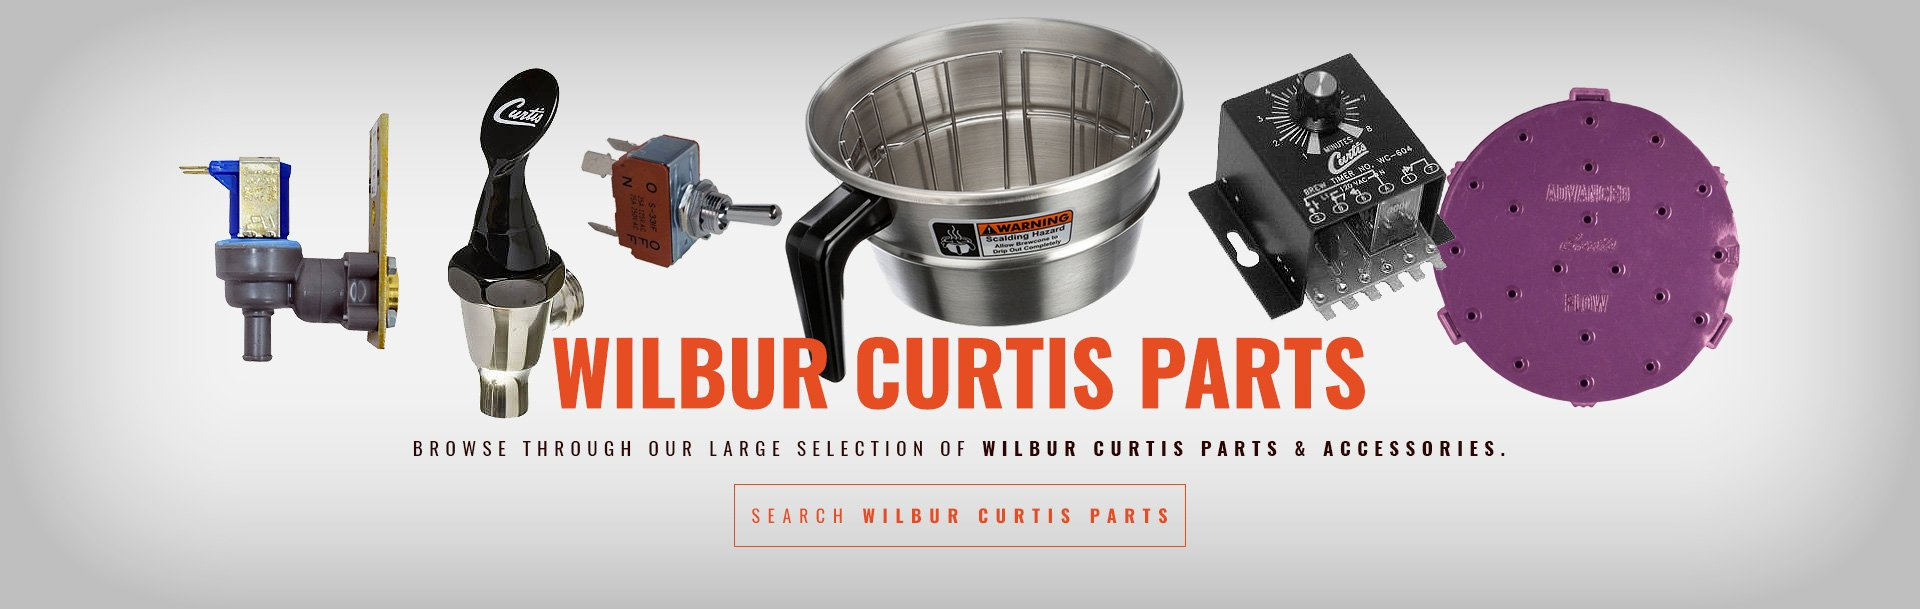 Wilbur Curtis Parts